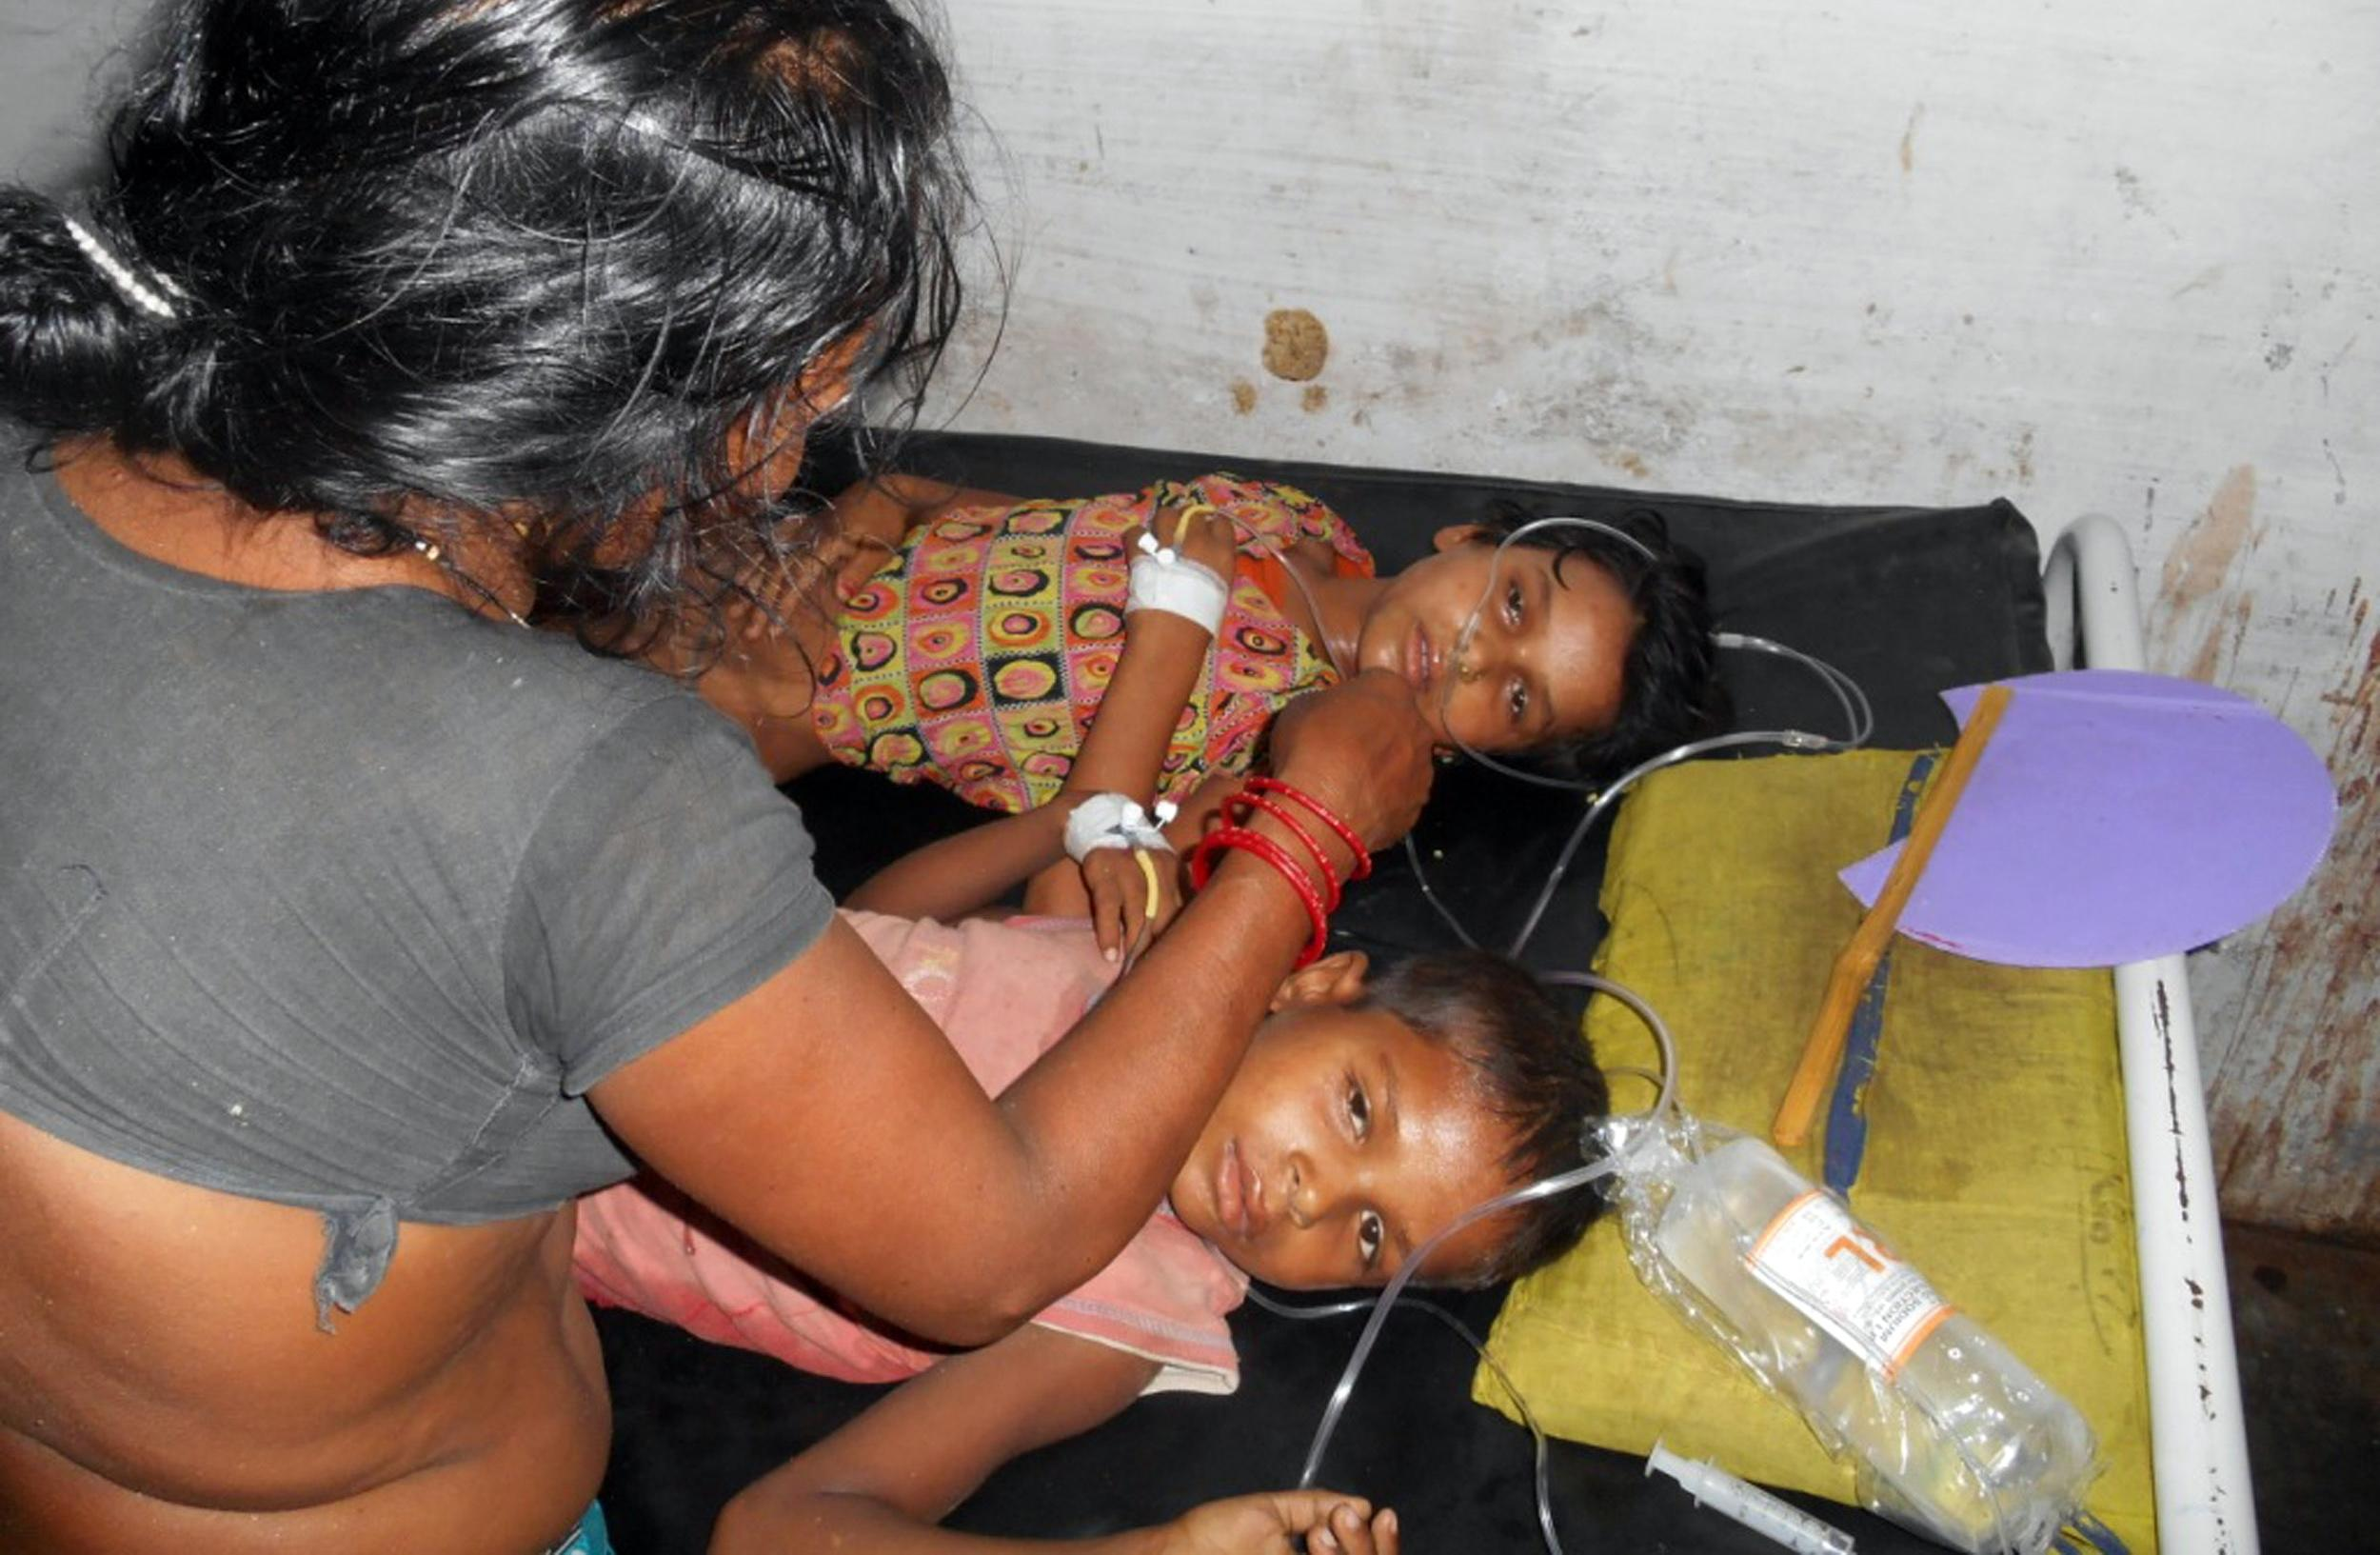 In this Tuesday, July 16, 2013 photo, schoolchildren receive treatment at a hospital after falling ill soon after eating a free meal at a primary school in Chhapra district, in the eastern Indian state of Bihar. At least 20 children have died and more are sick after eating free meals in the school, an official said Wednesday. The children are age 8 to 11. (AP Photo)